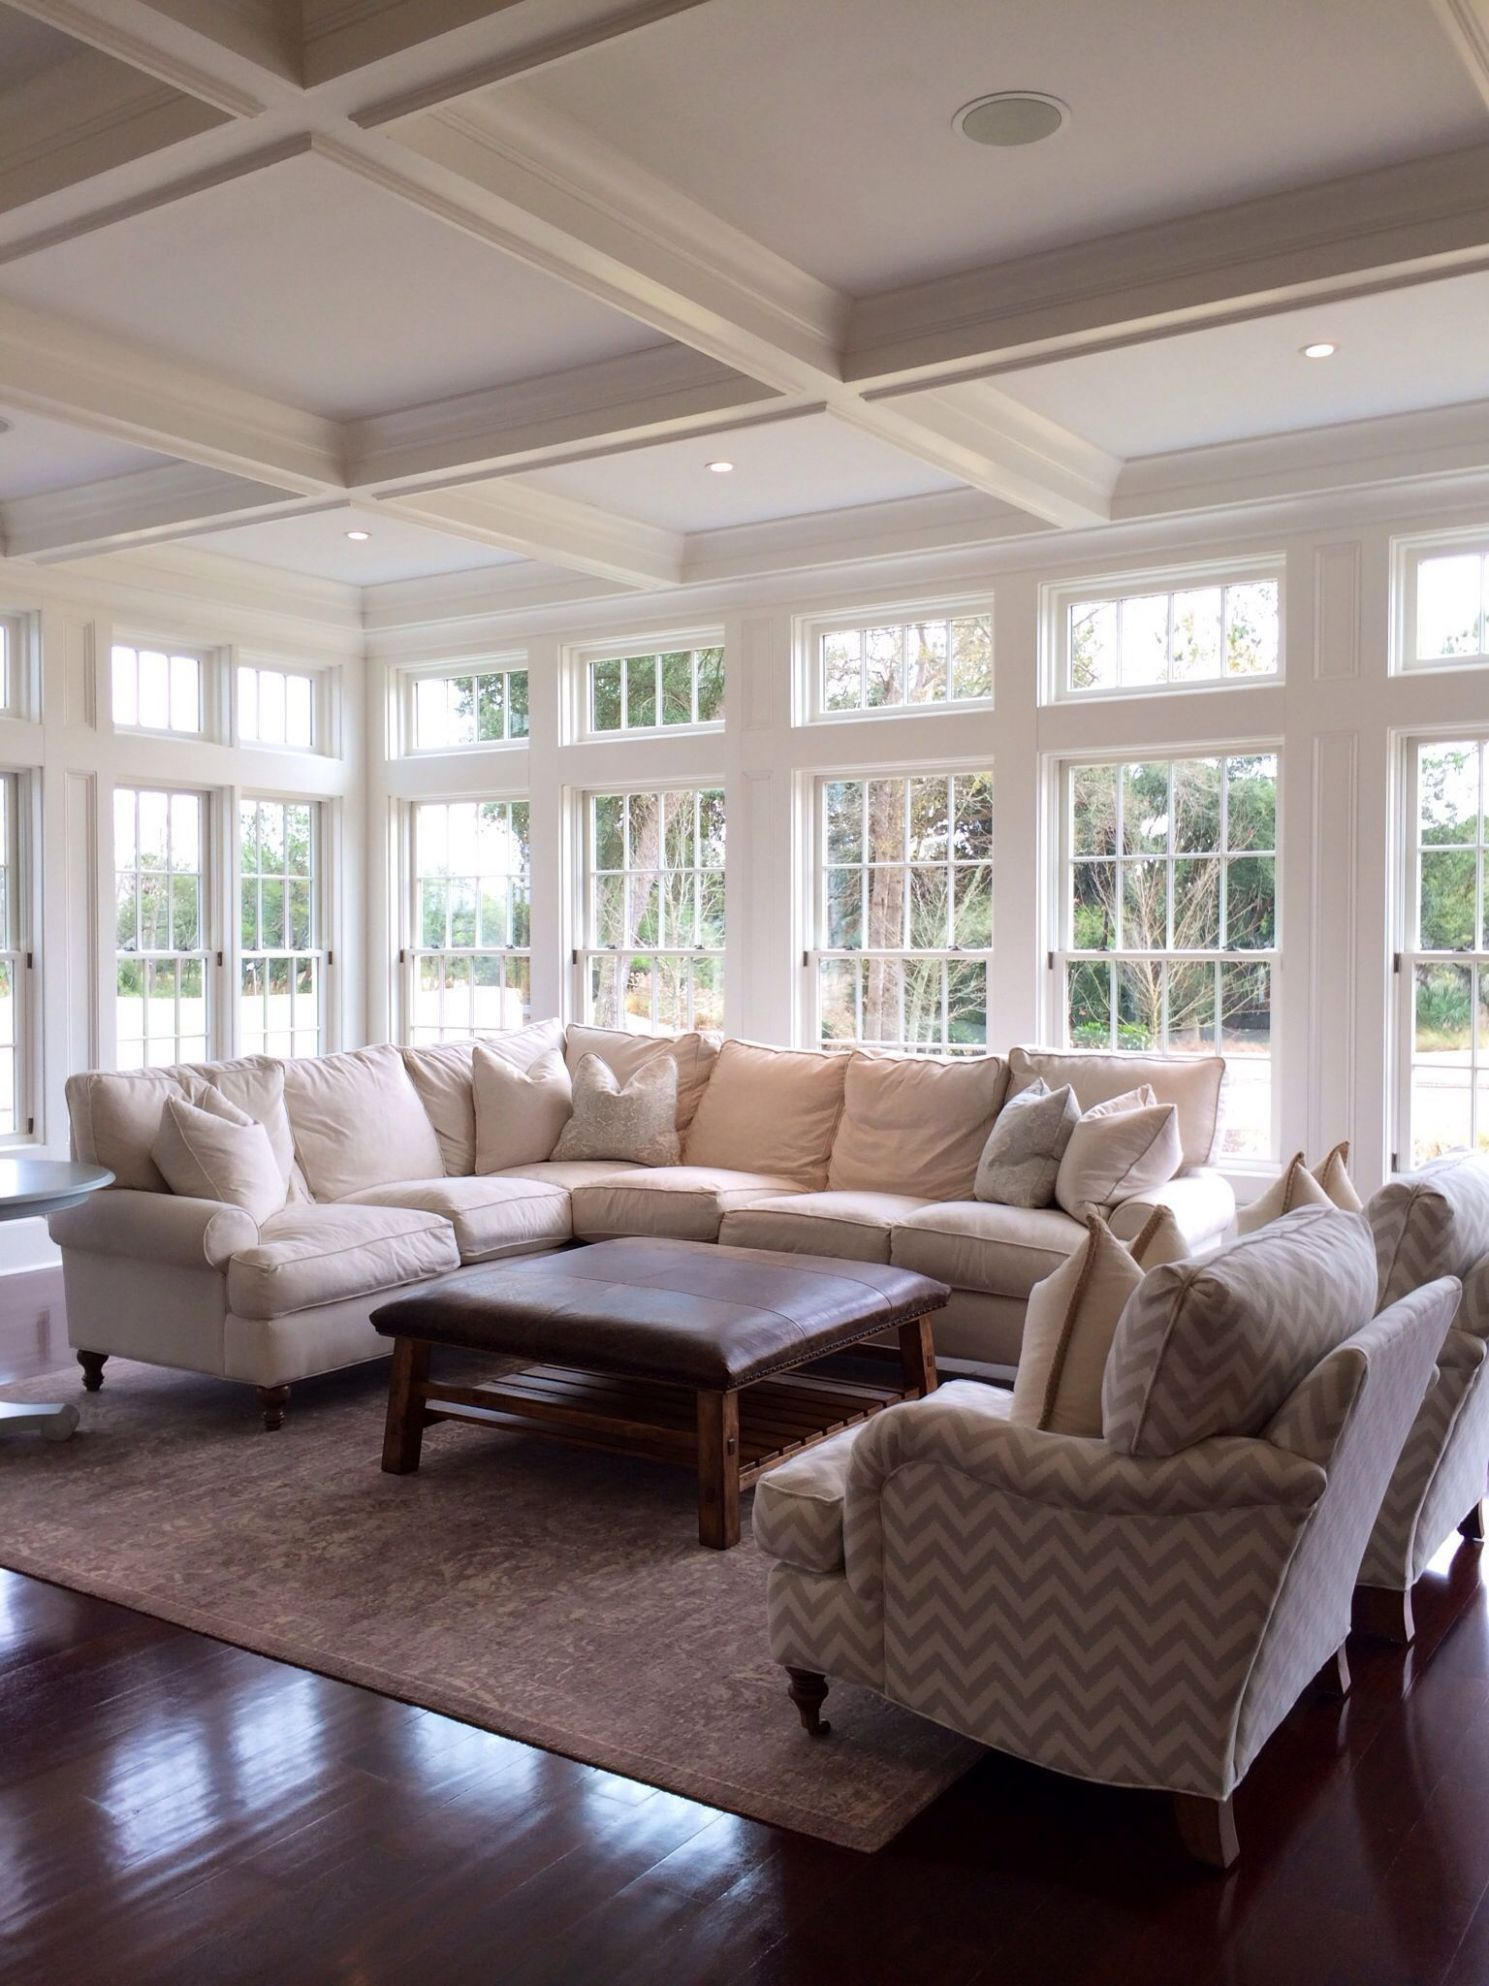 Sunroom Lighting Ideas Ceiling Lighting If You Have House With ..